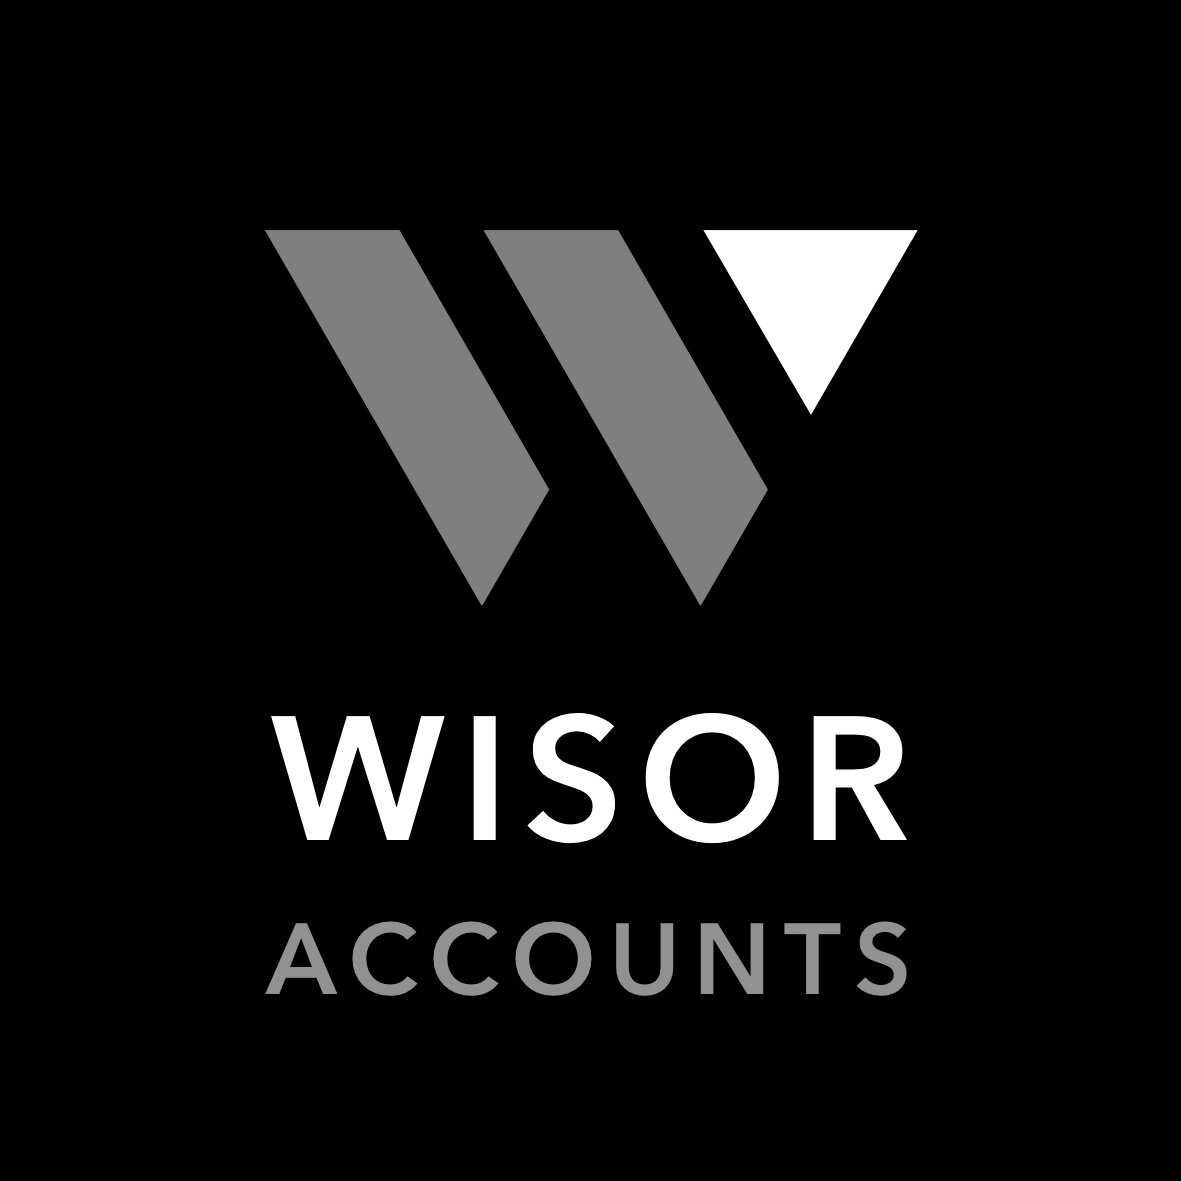 Wisor Accounts Logo.pdf  For download click on image.